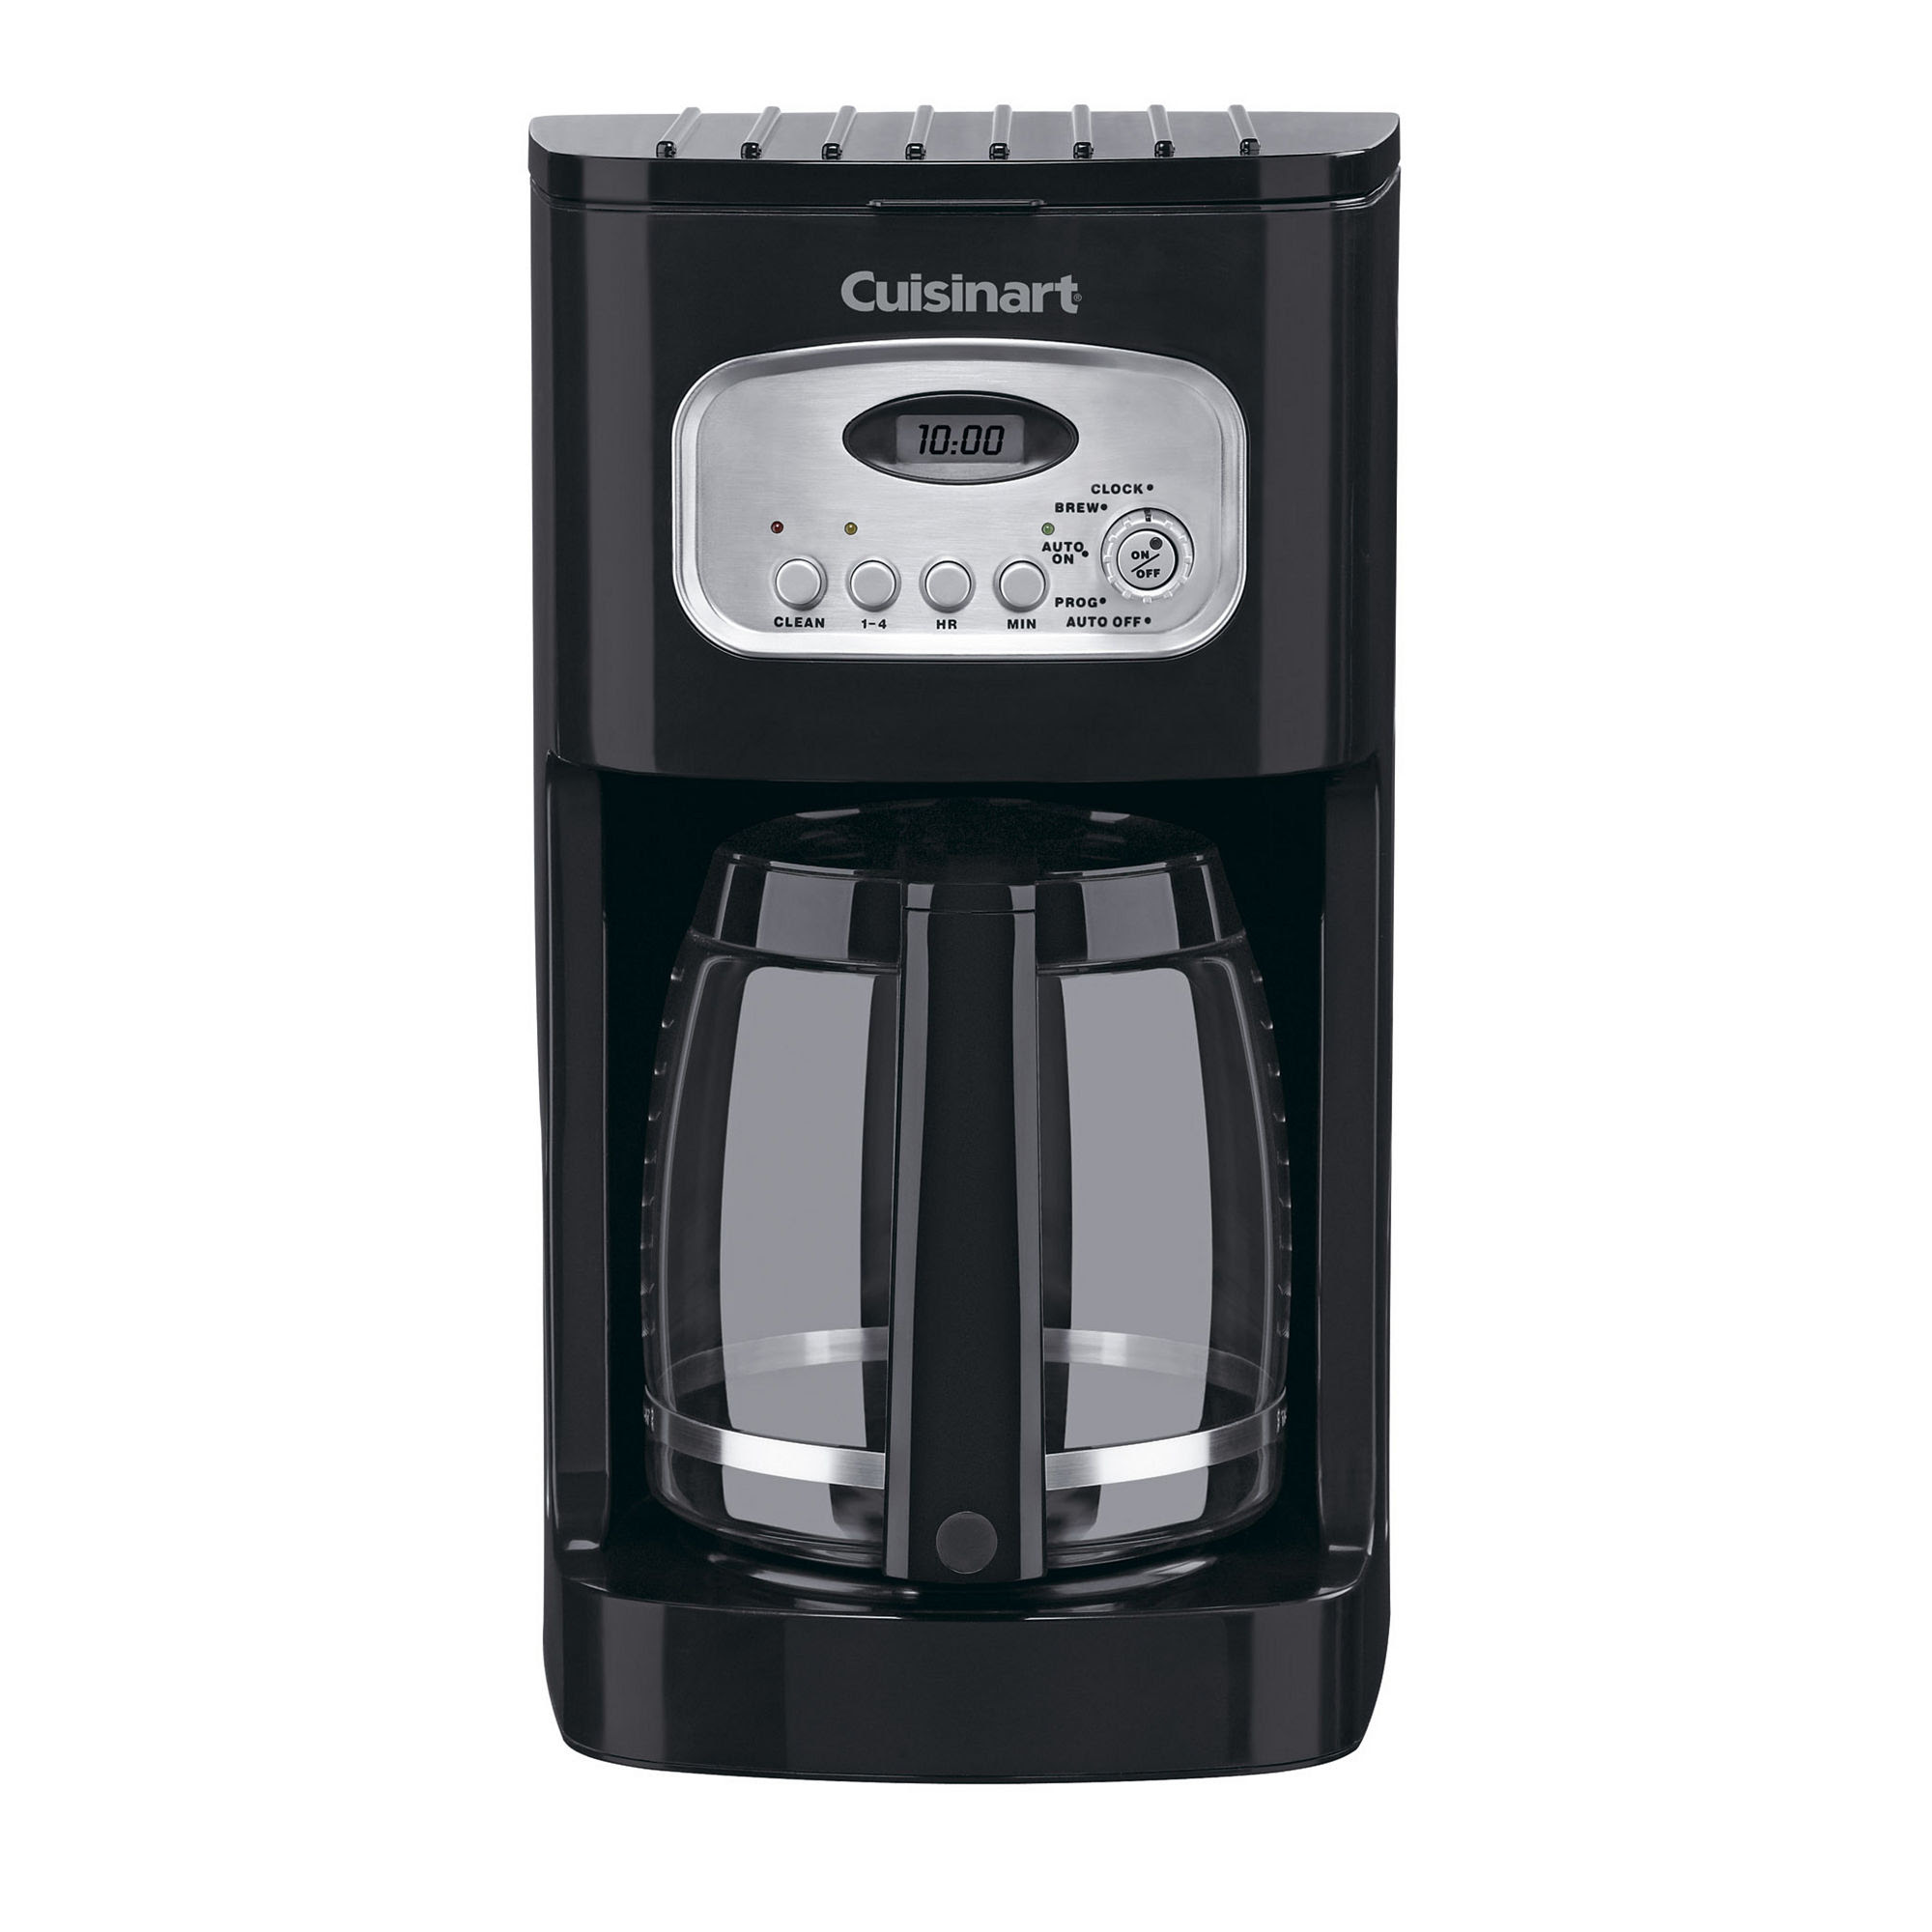 Cuisinart 12-Cup Coffee Maker DCC-1100